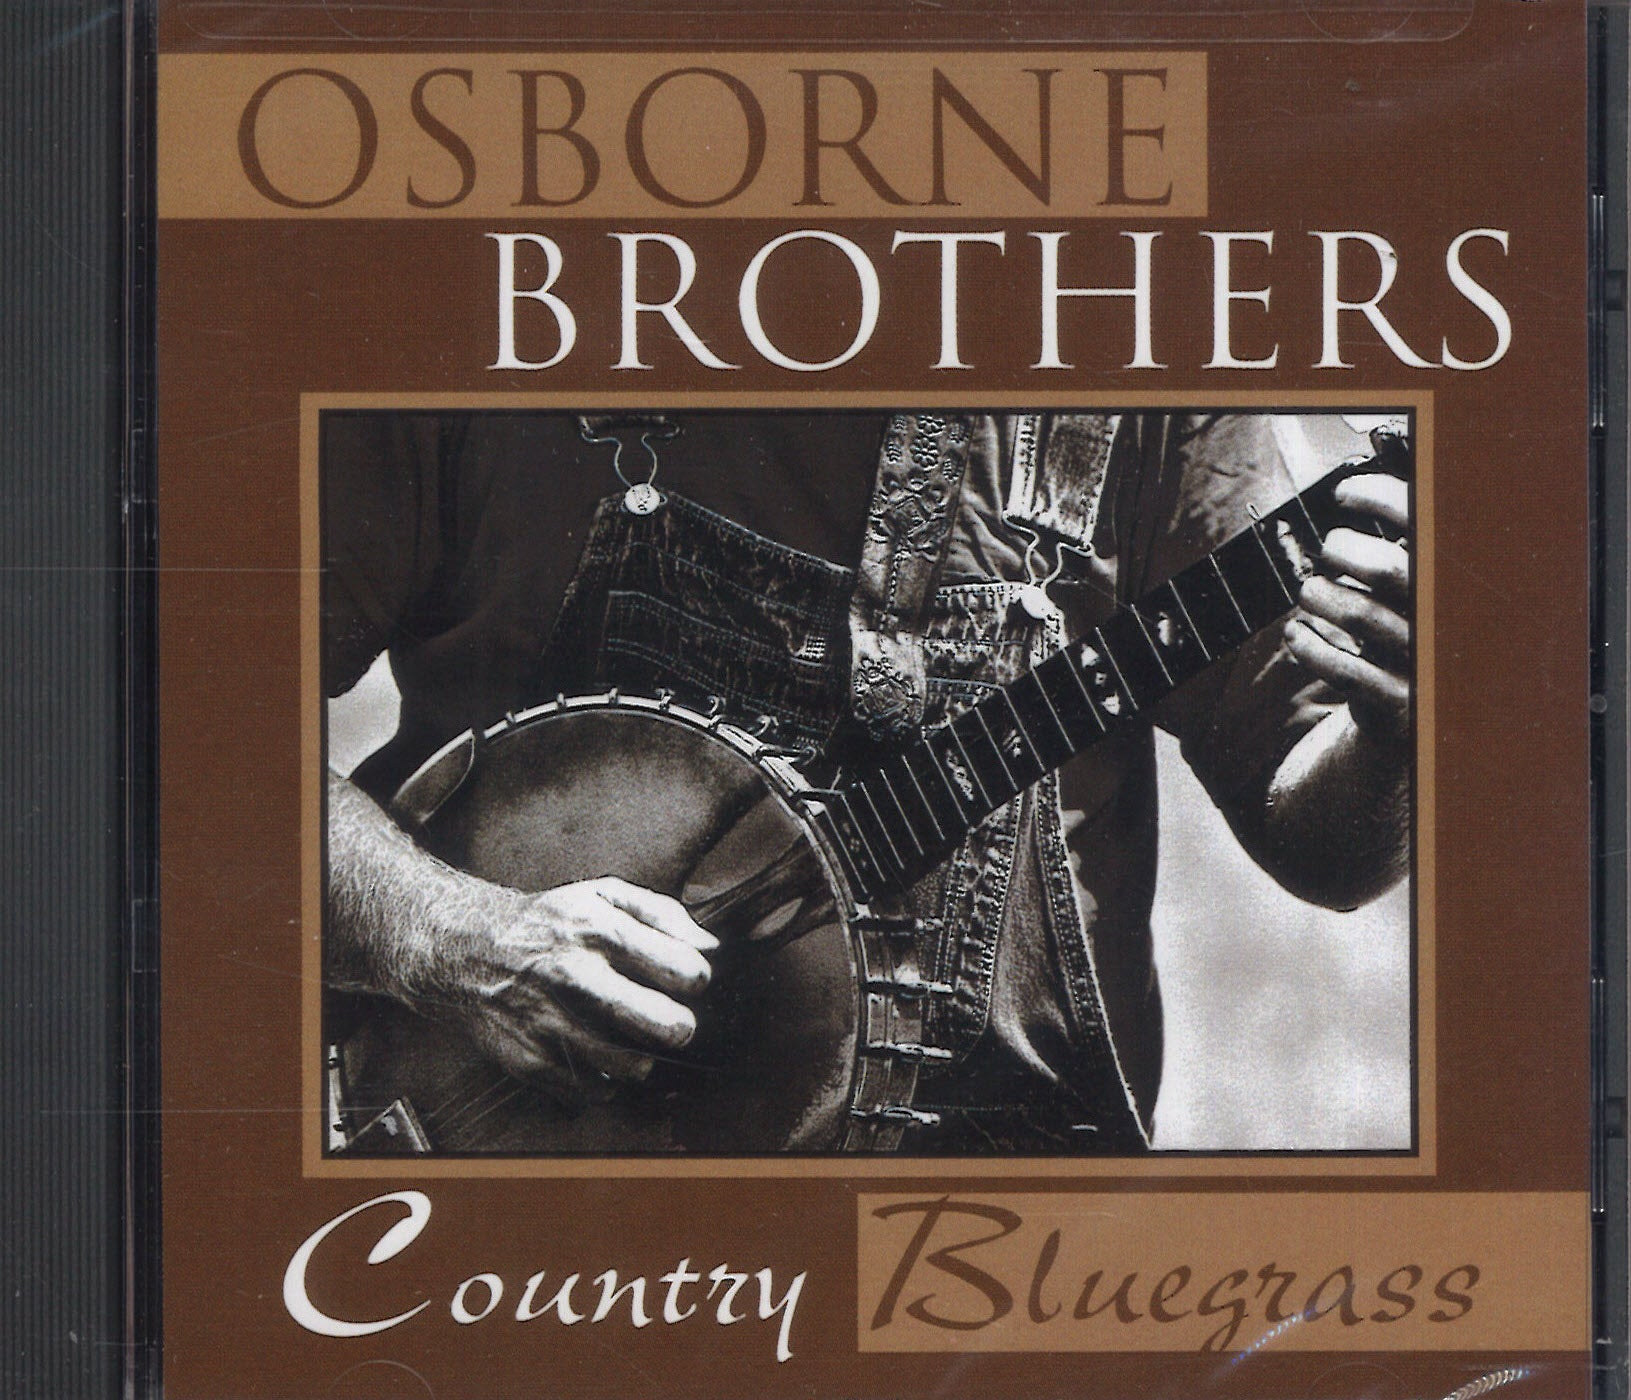 Osborne Brothers Country Bluegrass